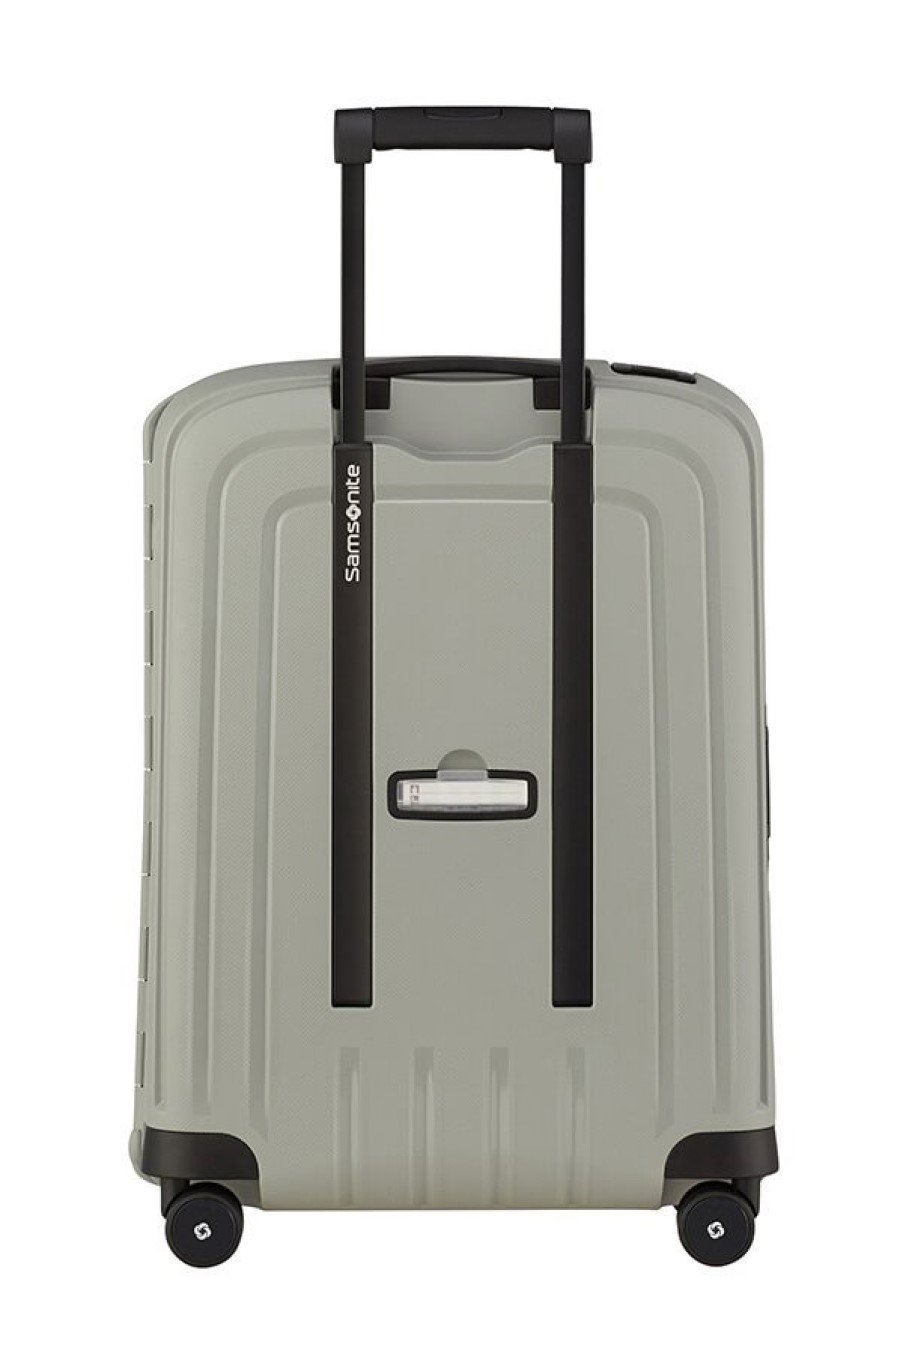 LyondellBasell and SUEZ collaborate with Samsonite to create recycled plastic suitcase collection